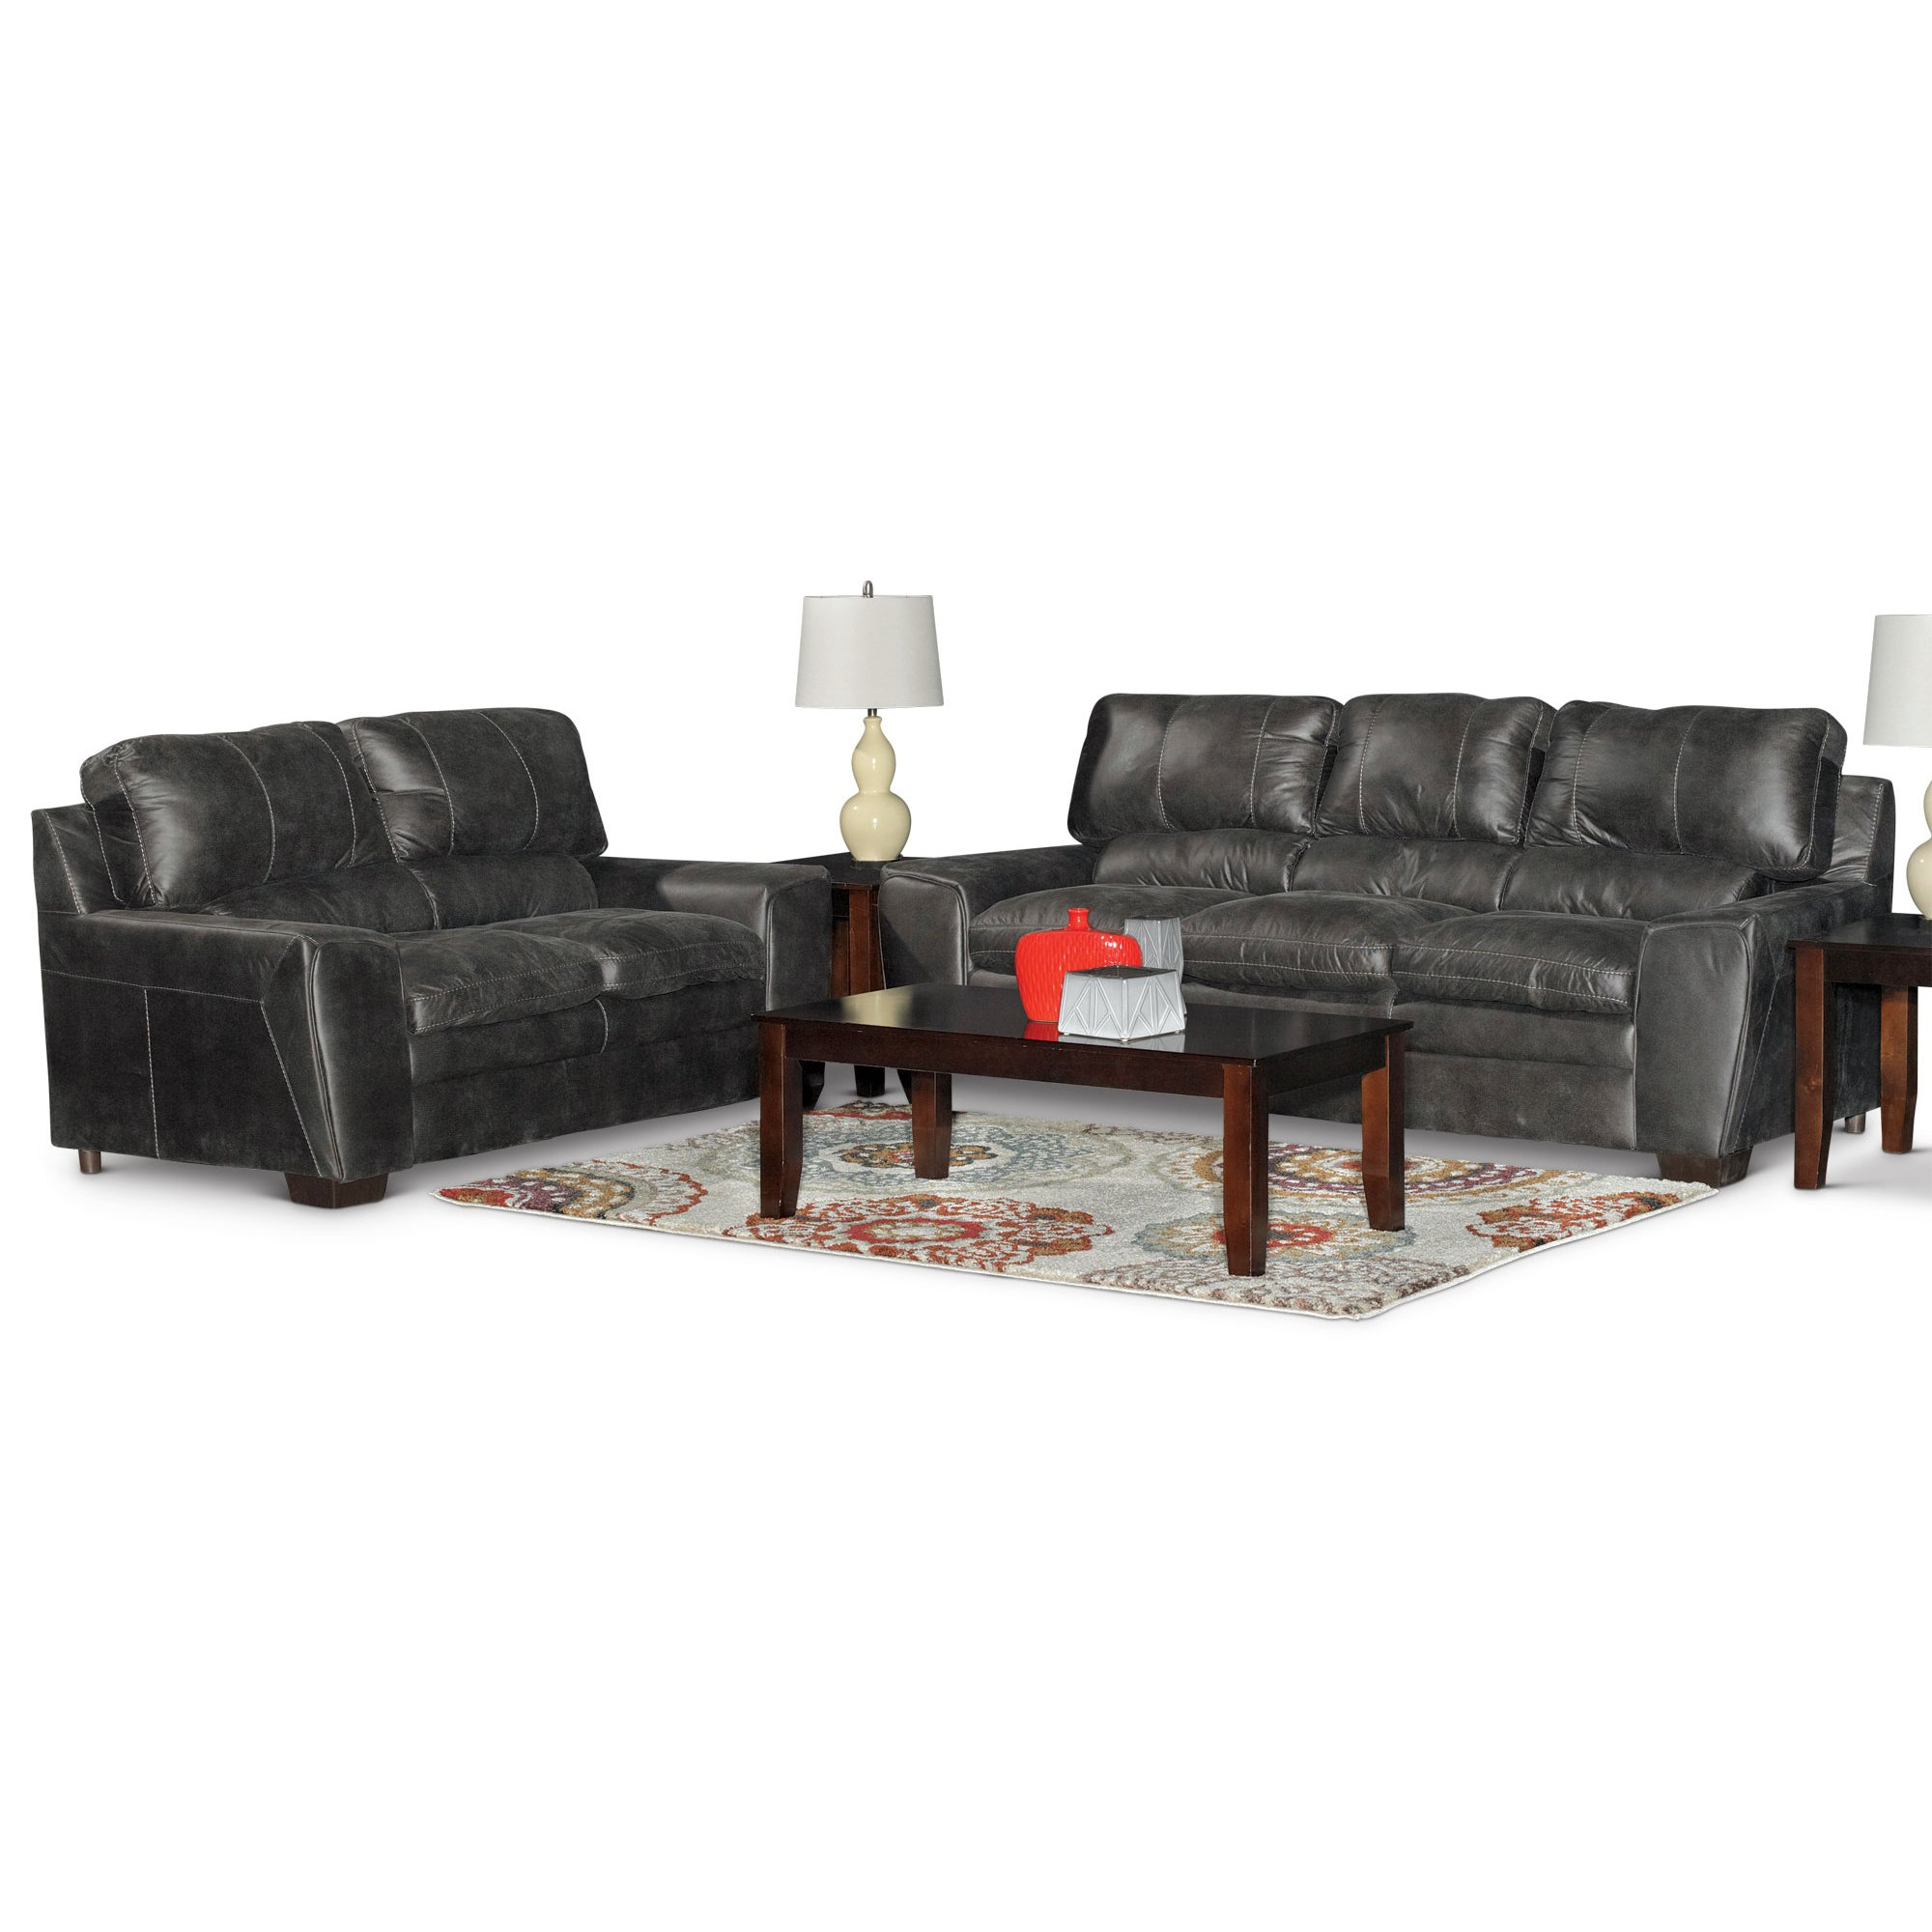 Buy living room furniture couches sectionals & tables